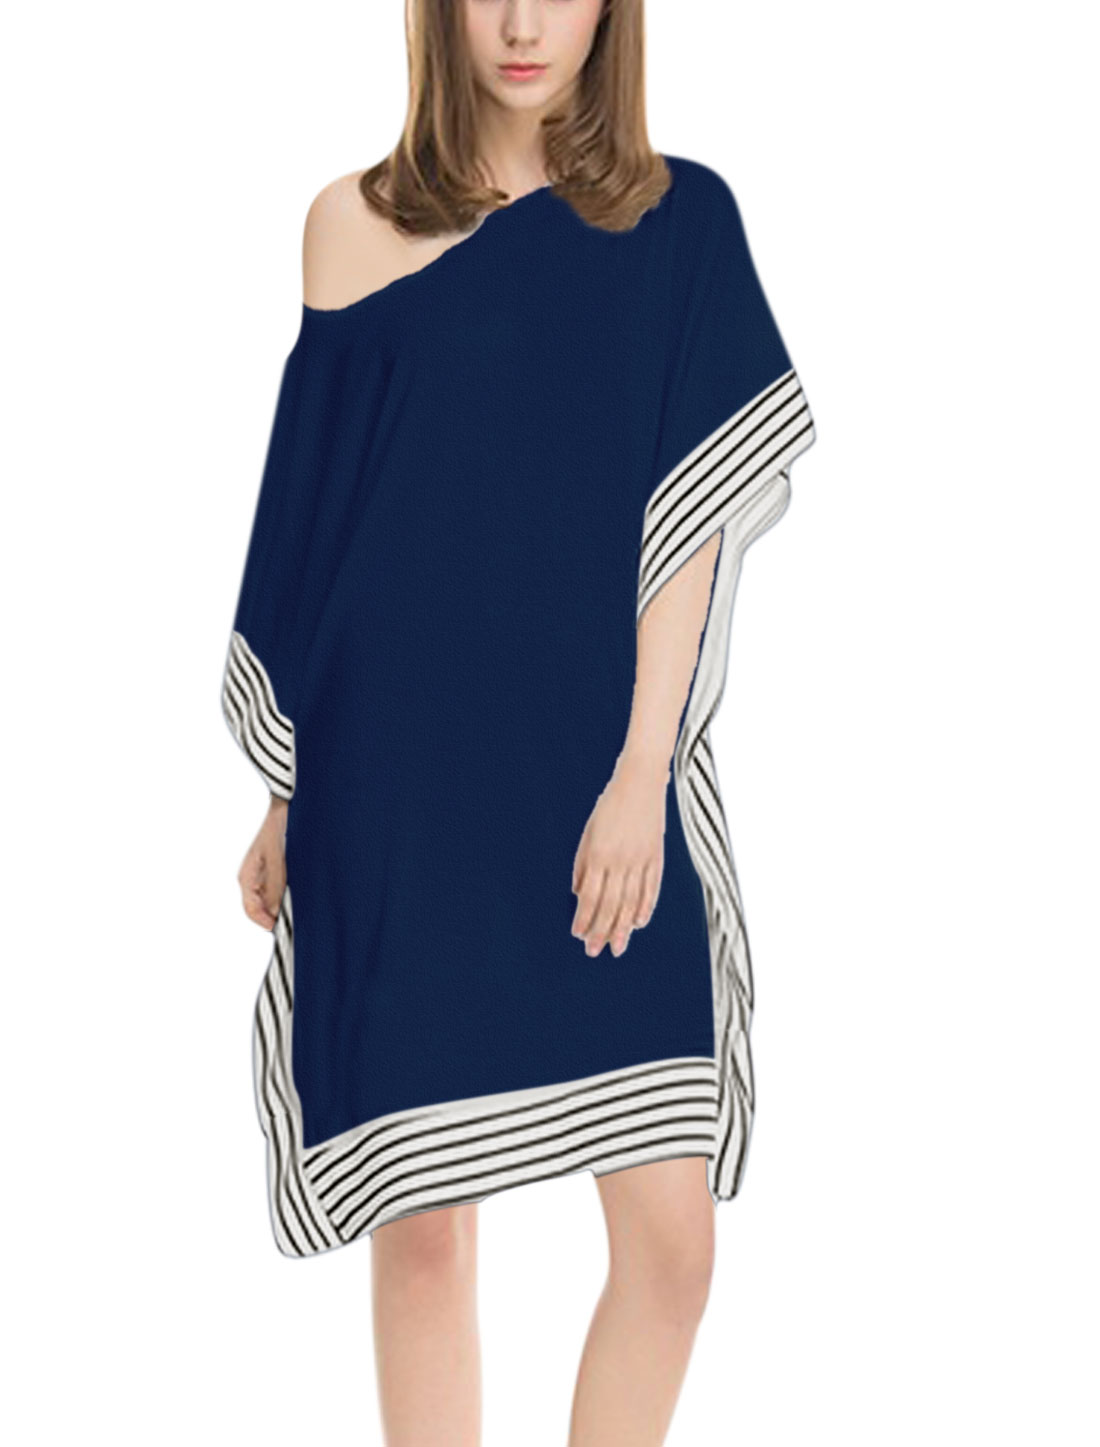 Ladies 3/4 Sleeve Stripes Cape Design Loose Tops Blouses Navy Blue S